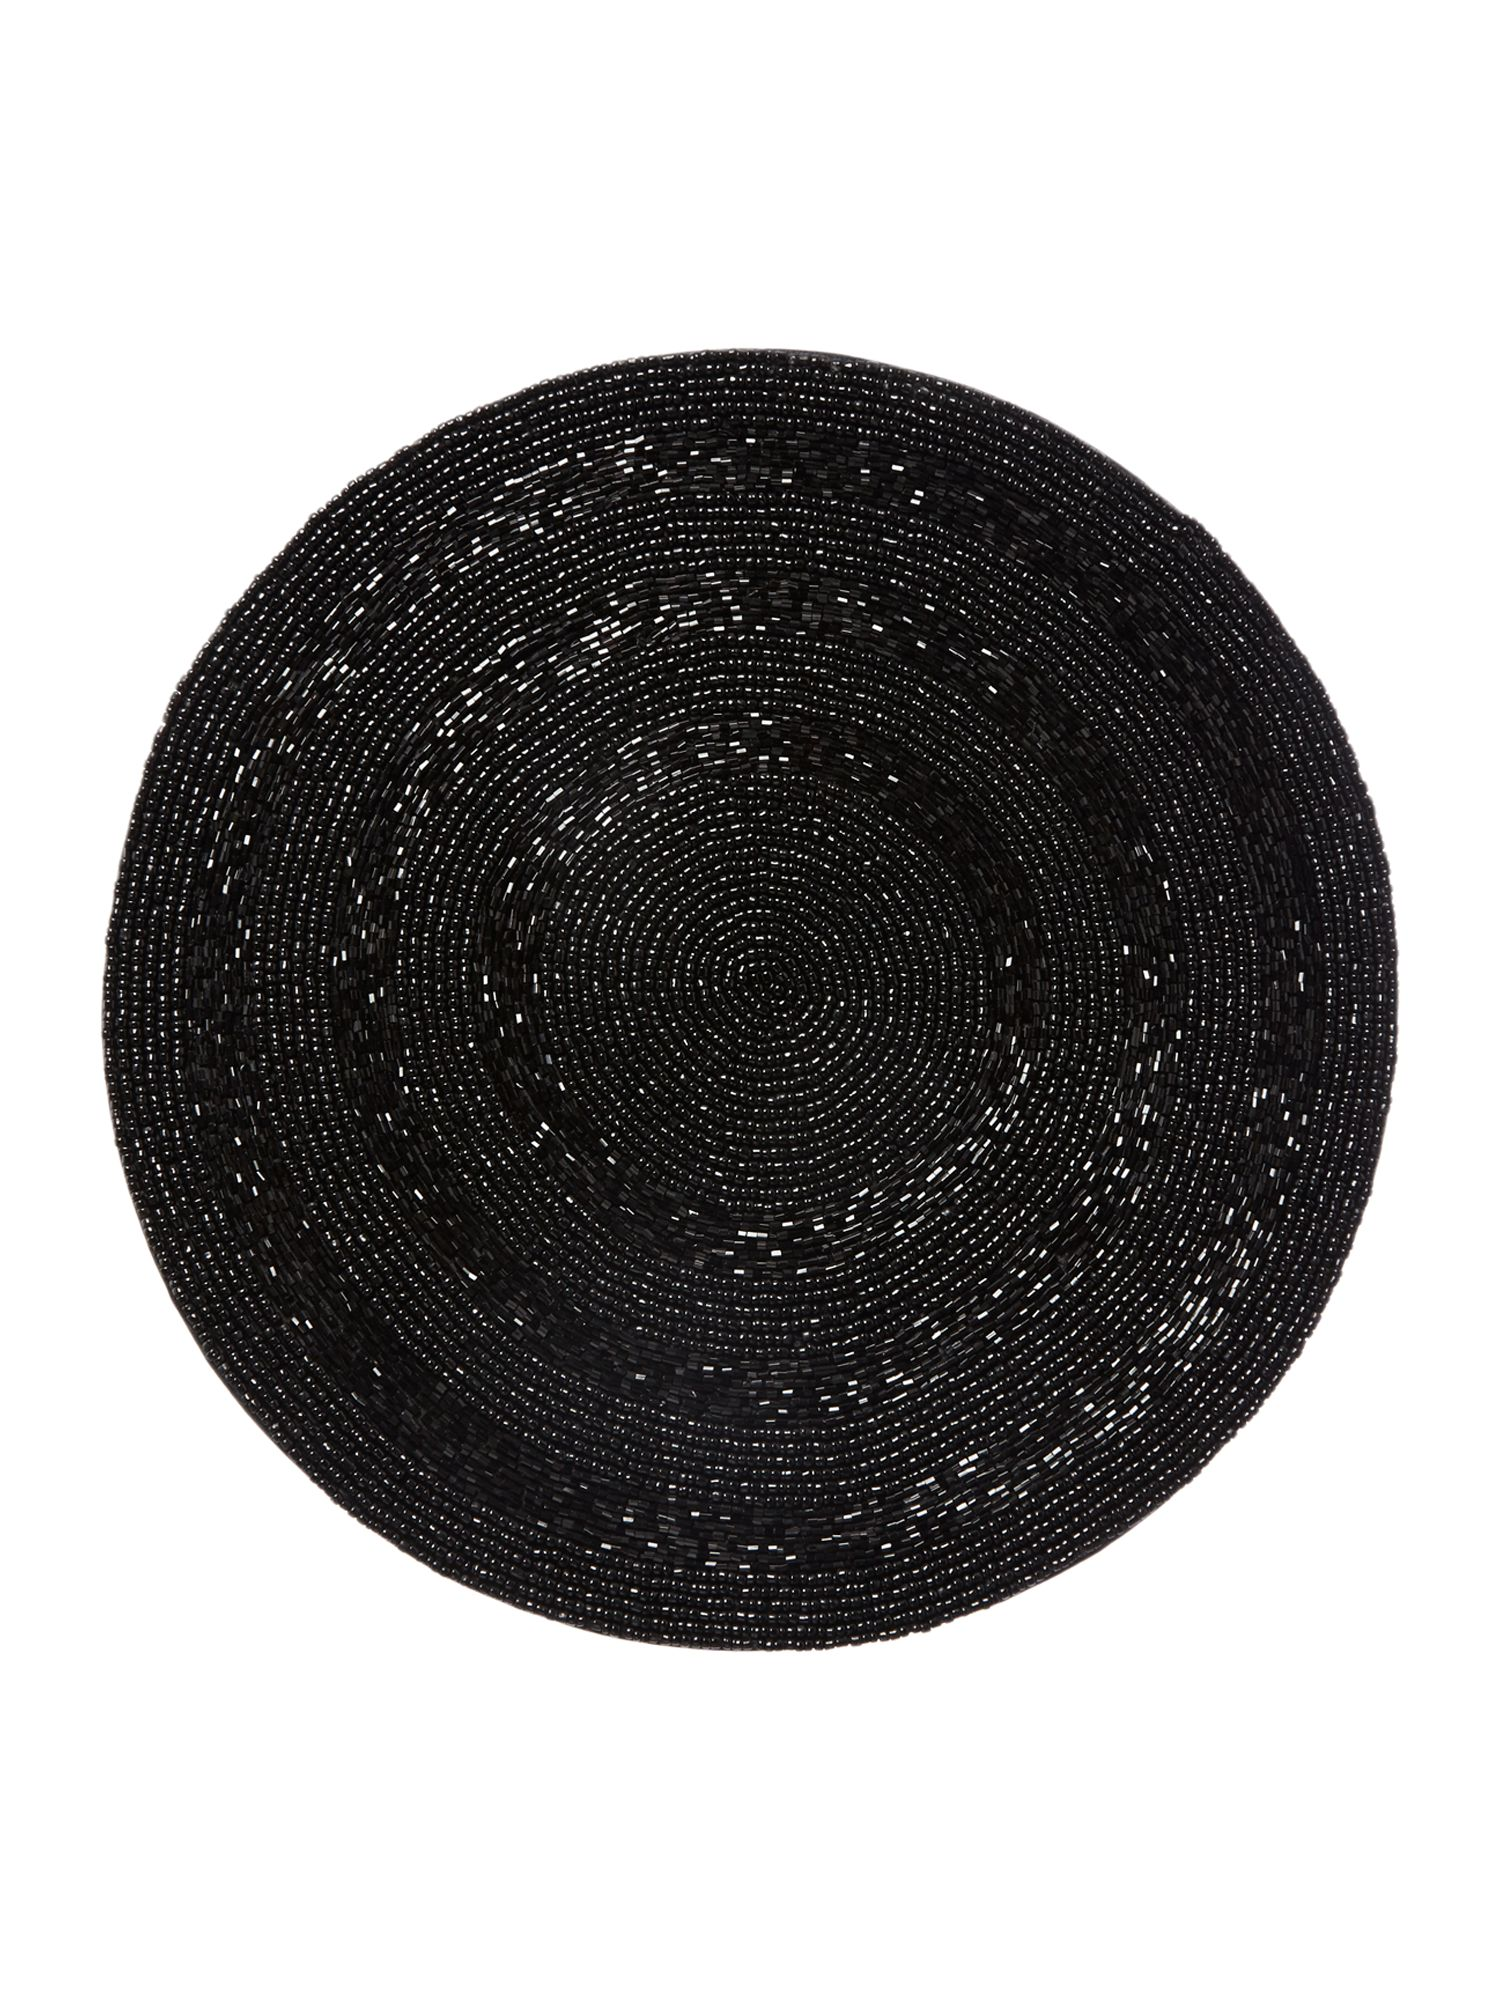 Black halo placemats set of 2